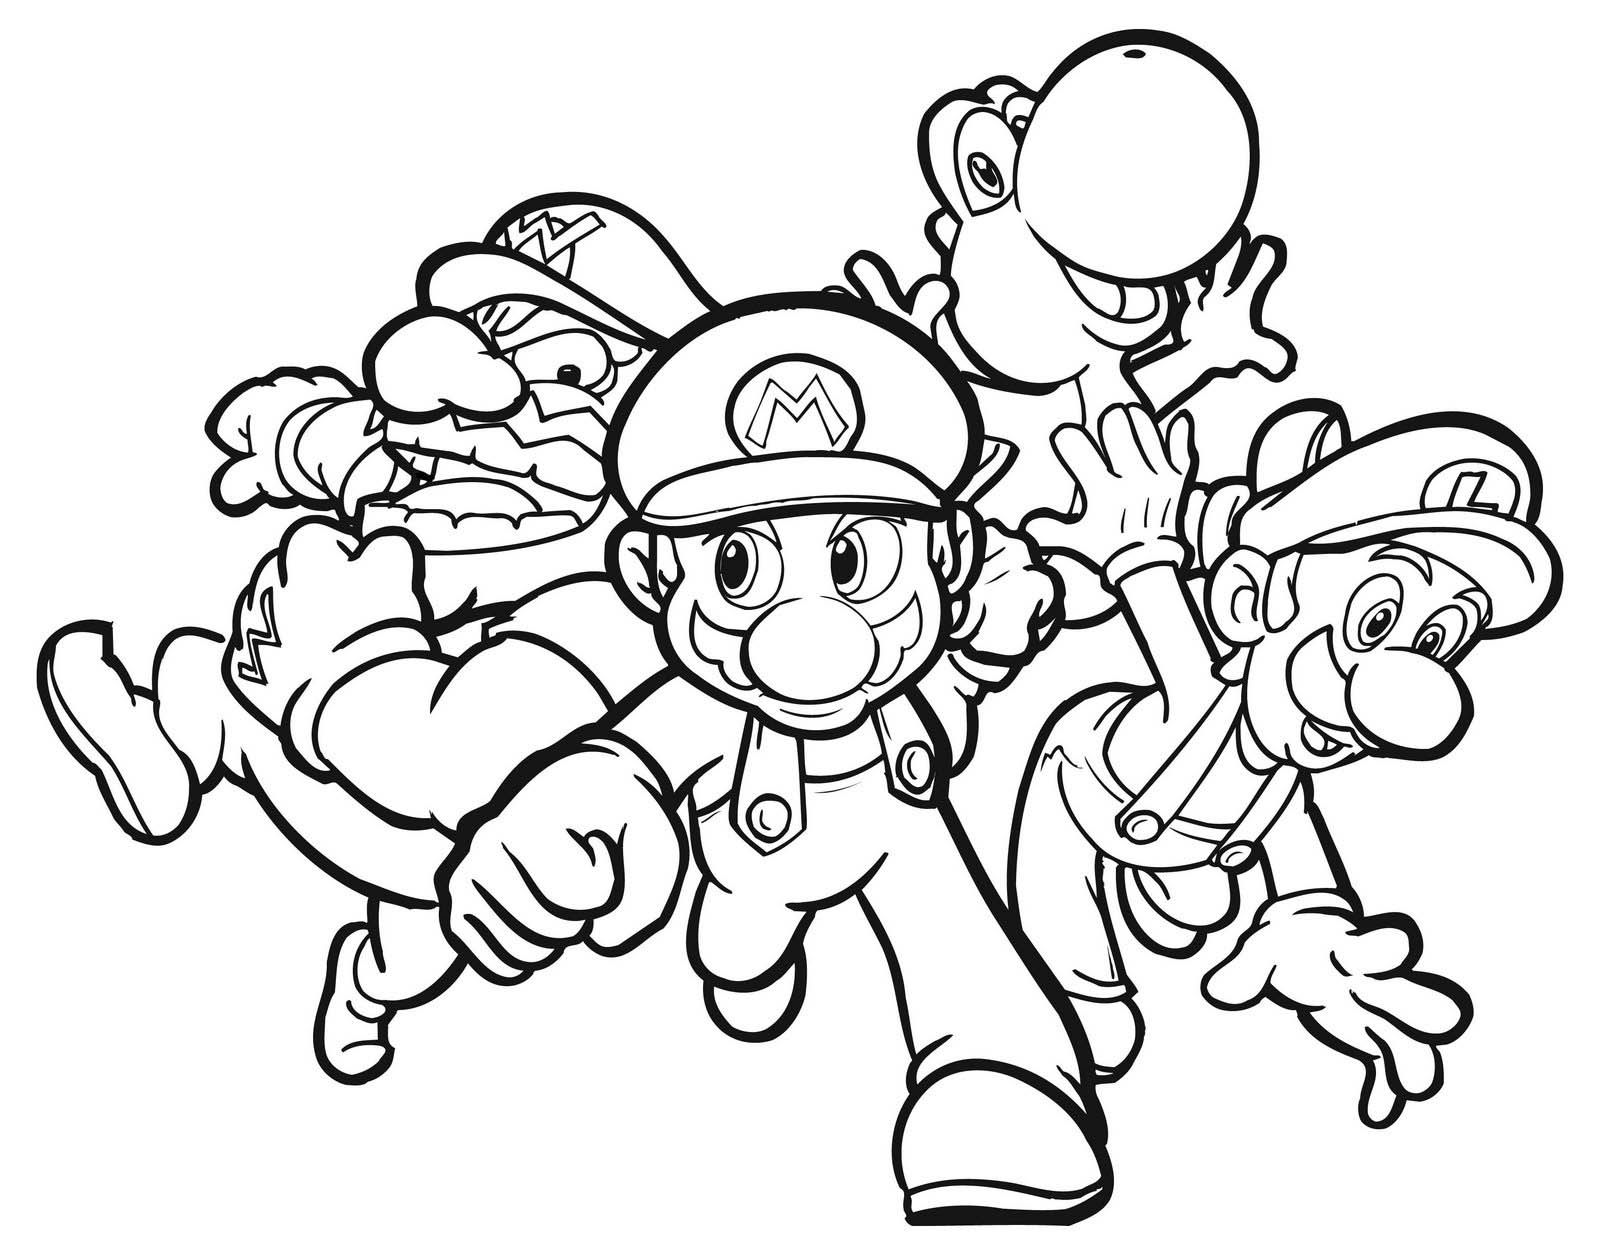 Colouring in book free - Mario Coloring Pages To Print Free Large Images